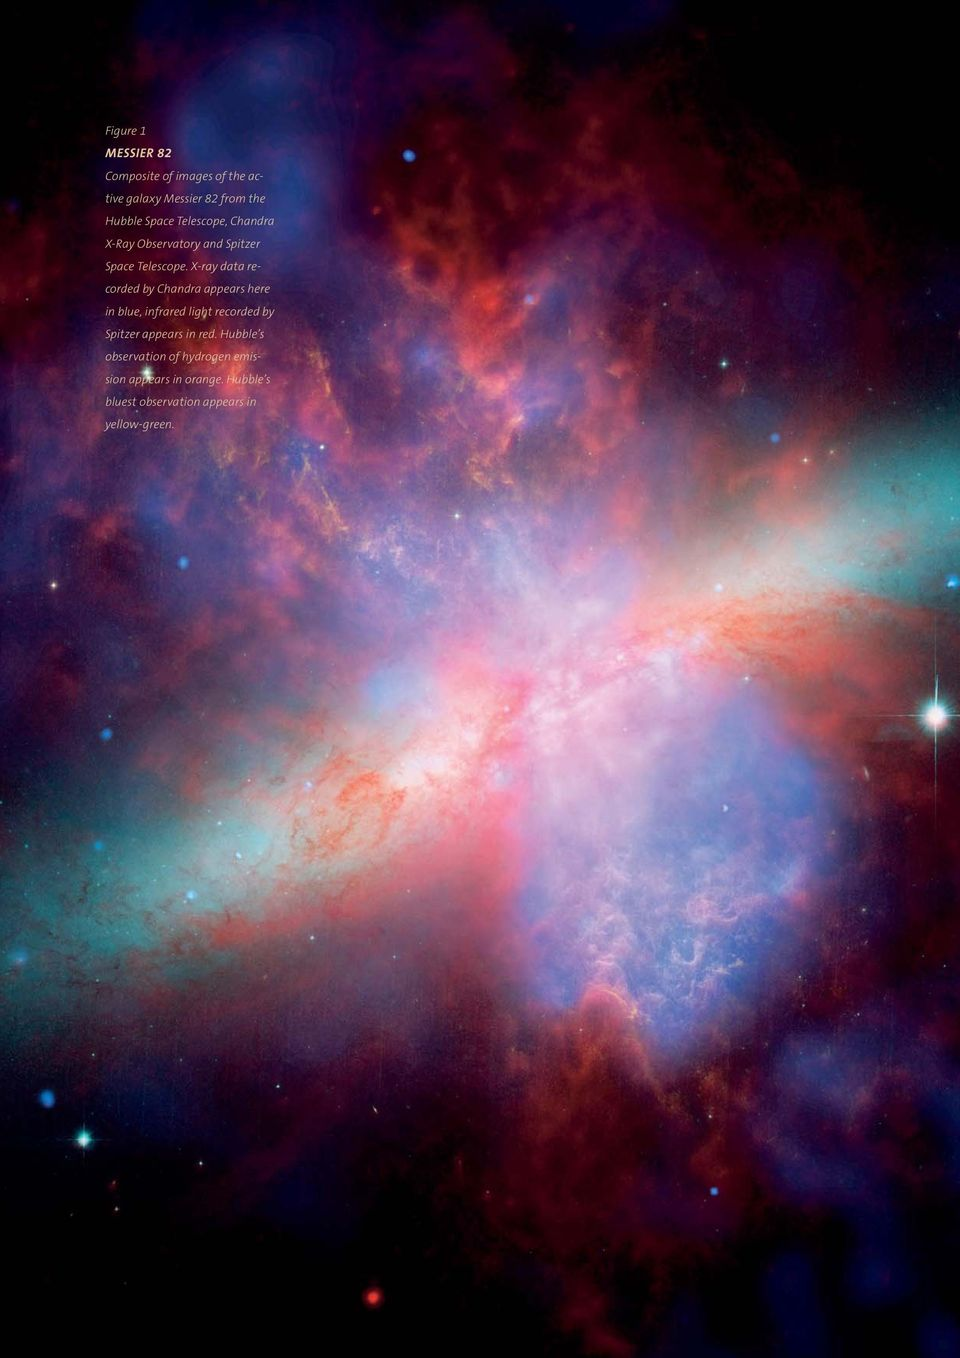 X-ray data recorded by Chandra appears here in blue, infrared light recorded by Spitzer